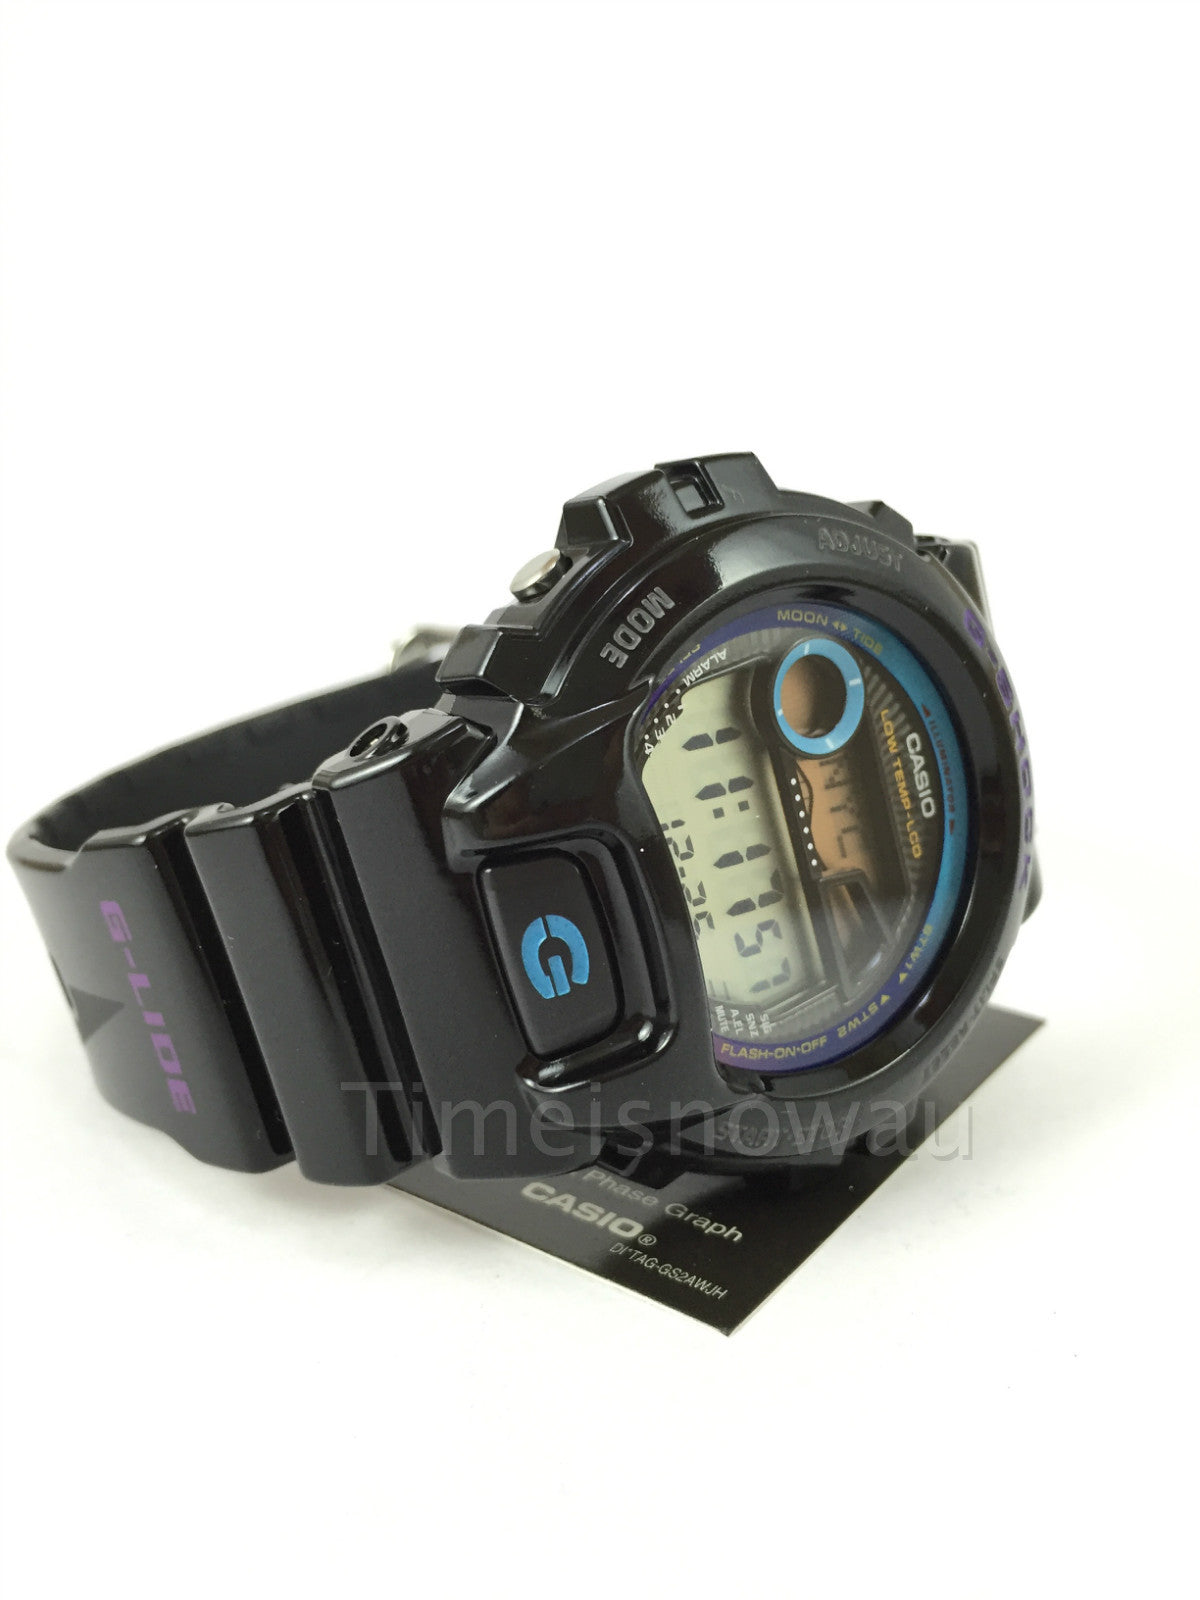 Promo Limited Edition Casio Lovers Collection Lov 16c 7 G Shock Dw Harddisk Seagate Internal Pc 3tb Hdd Sata 35ampquot Garansi Resmi Babyg Watches Australia Free Express Shipping